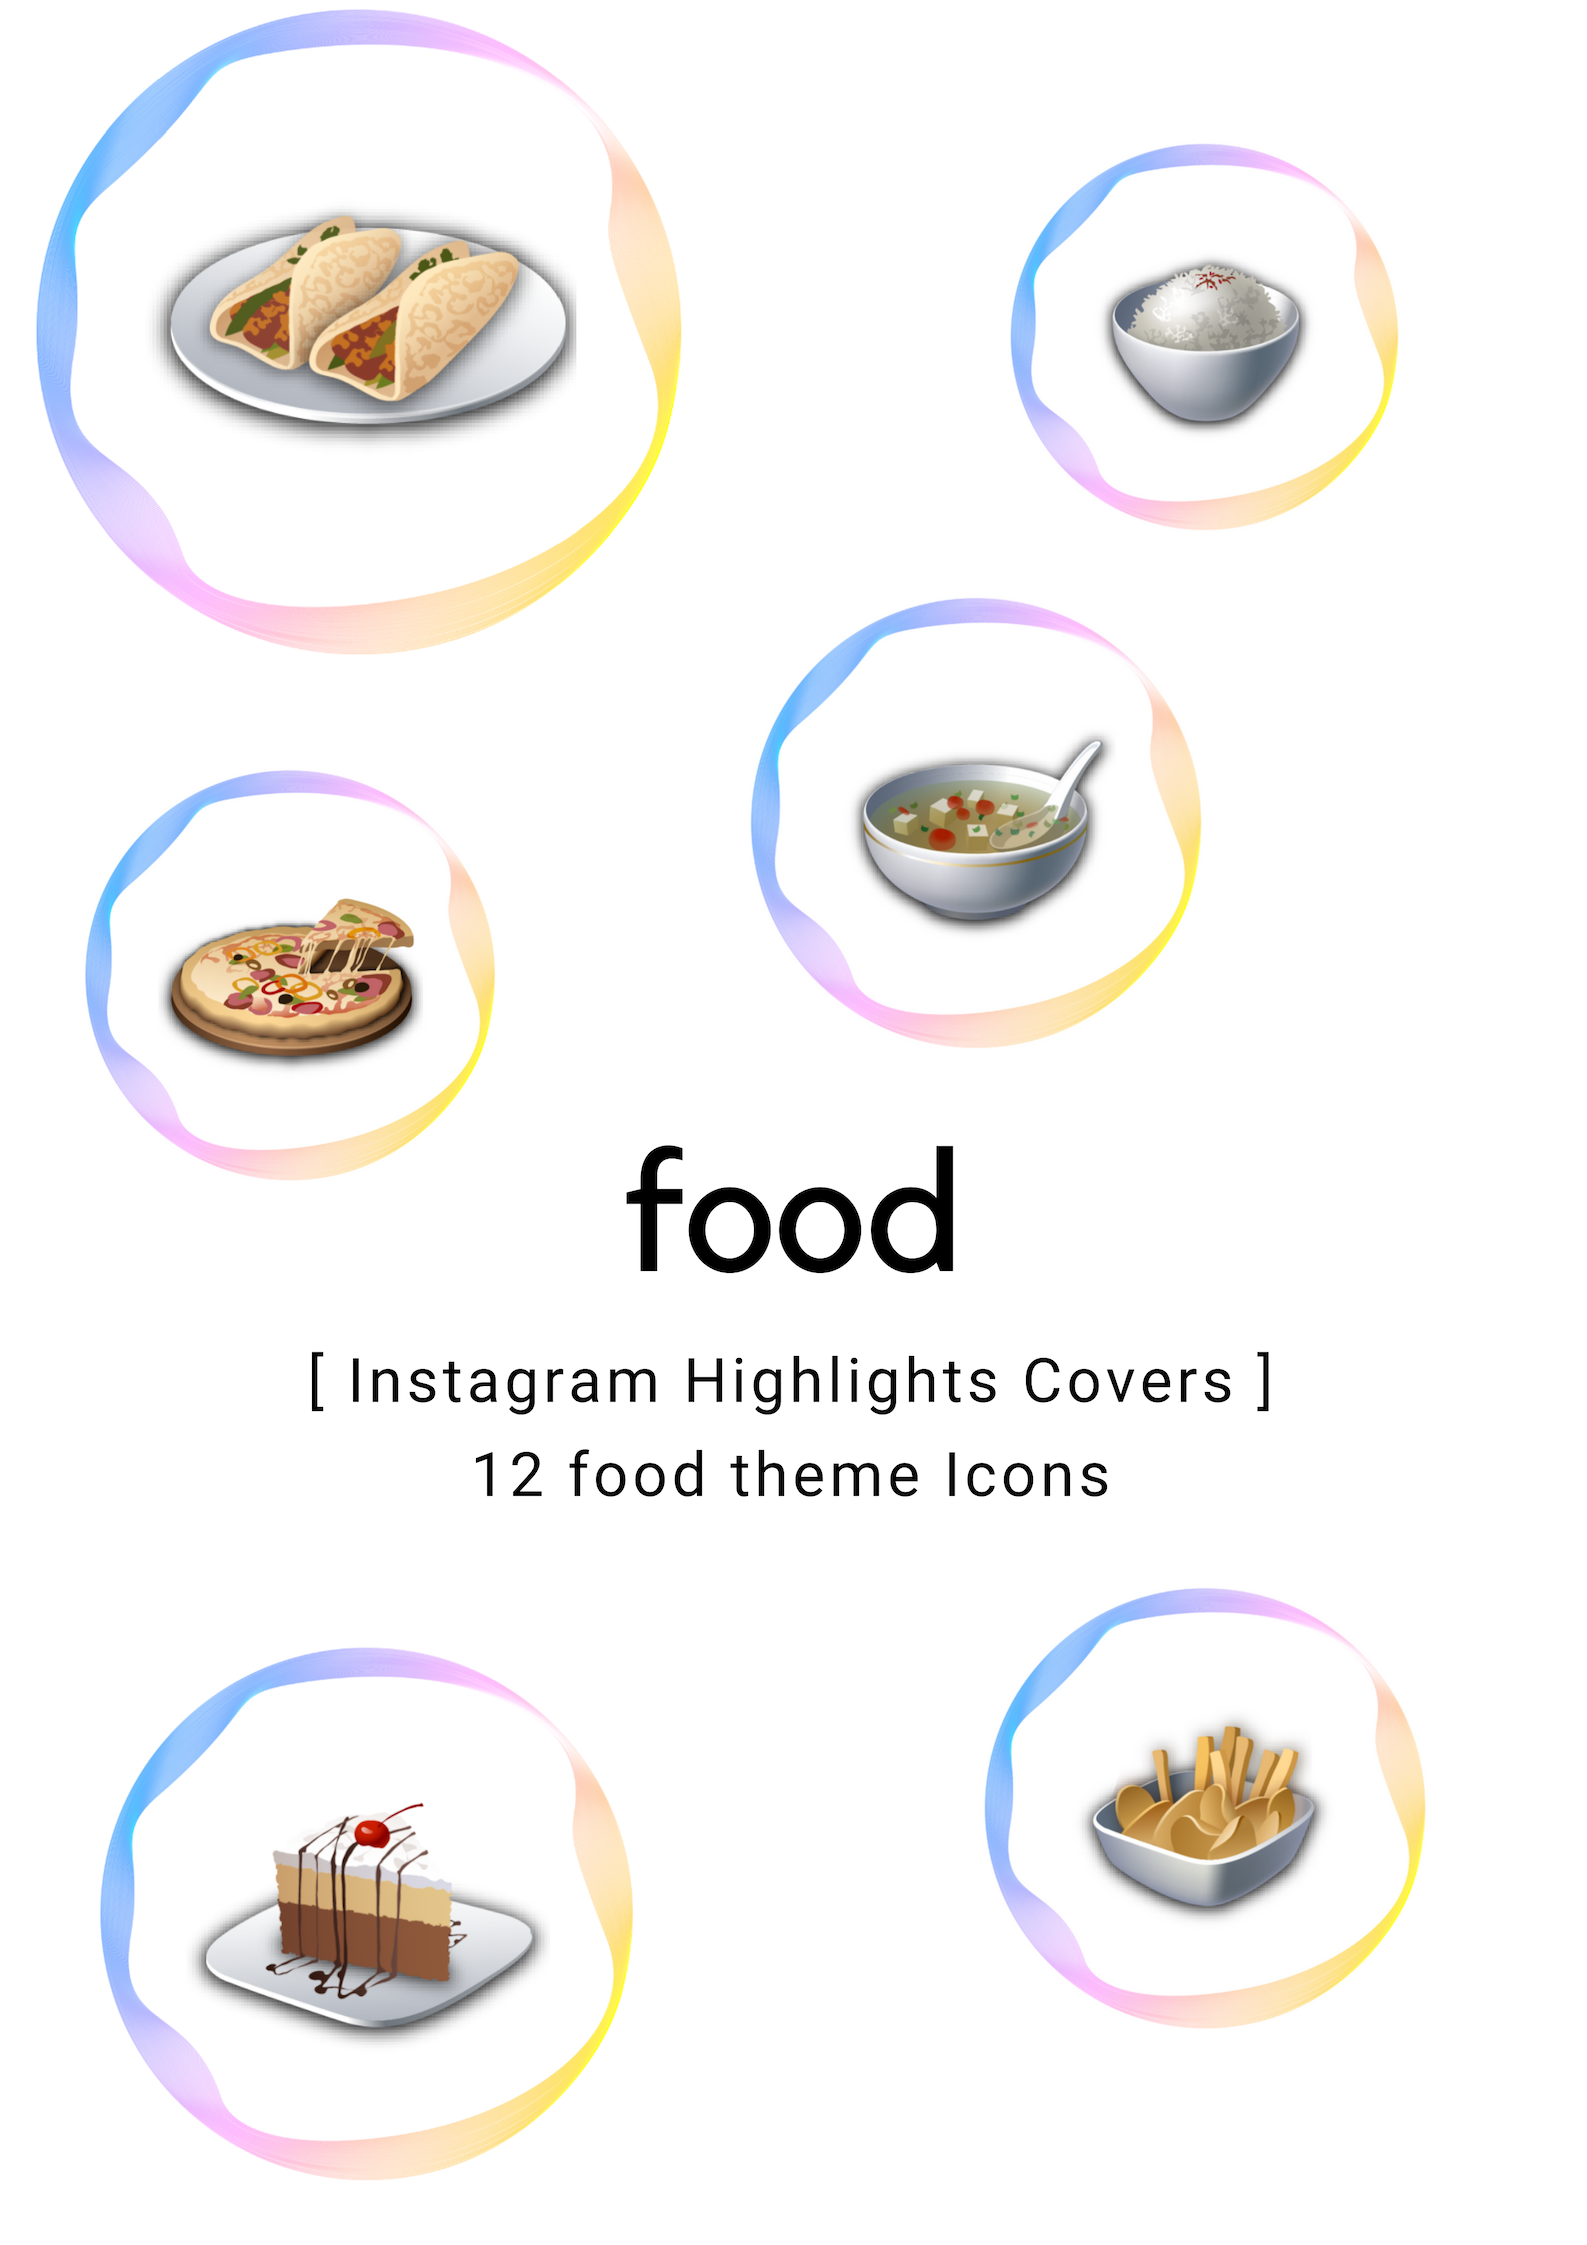 Food Theme Insta Stories Highlights 12 Covers Bundle Caterina Ciacatani